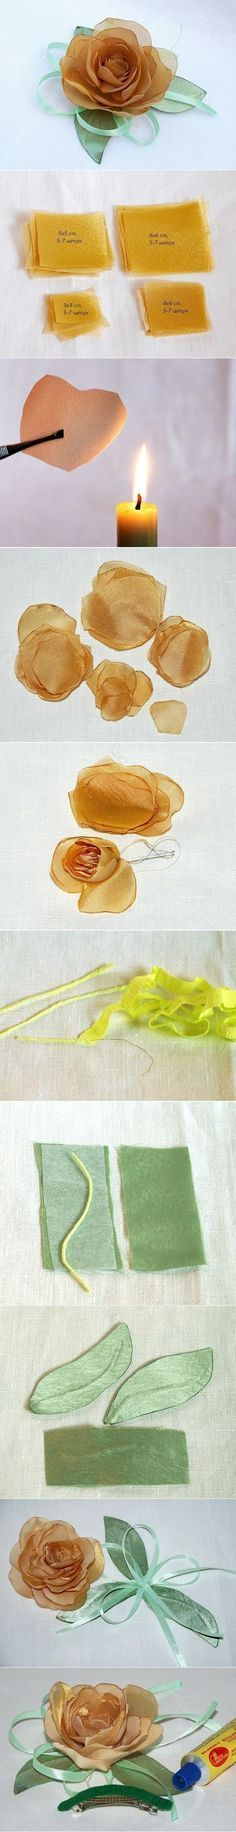 DIY Pretty Hairpin Rose. Very nice, but I don't know what type of material this is. I guess I would know it when I saw it.